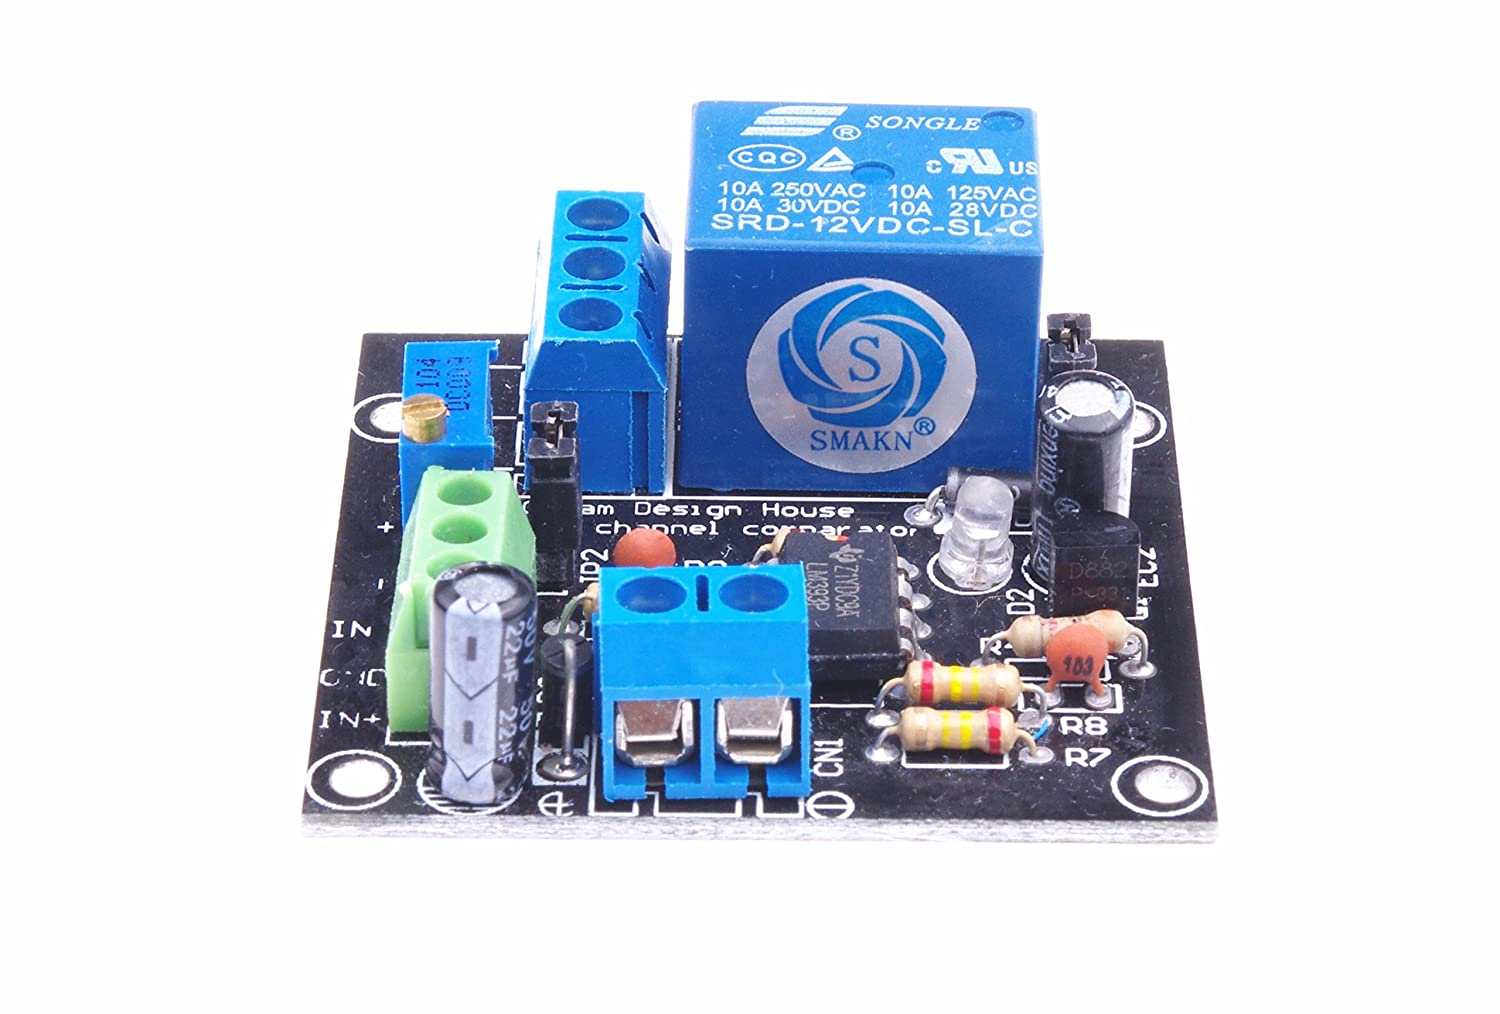 Smakn Dc 12v 1 Channel Voltage Comparator Lm393 Circuit Battery Charger Picture Of Good Electronic Module New Home Audio Theater